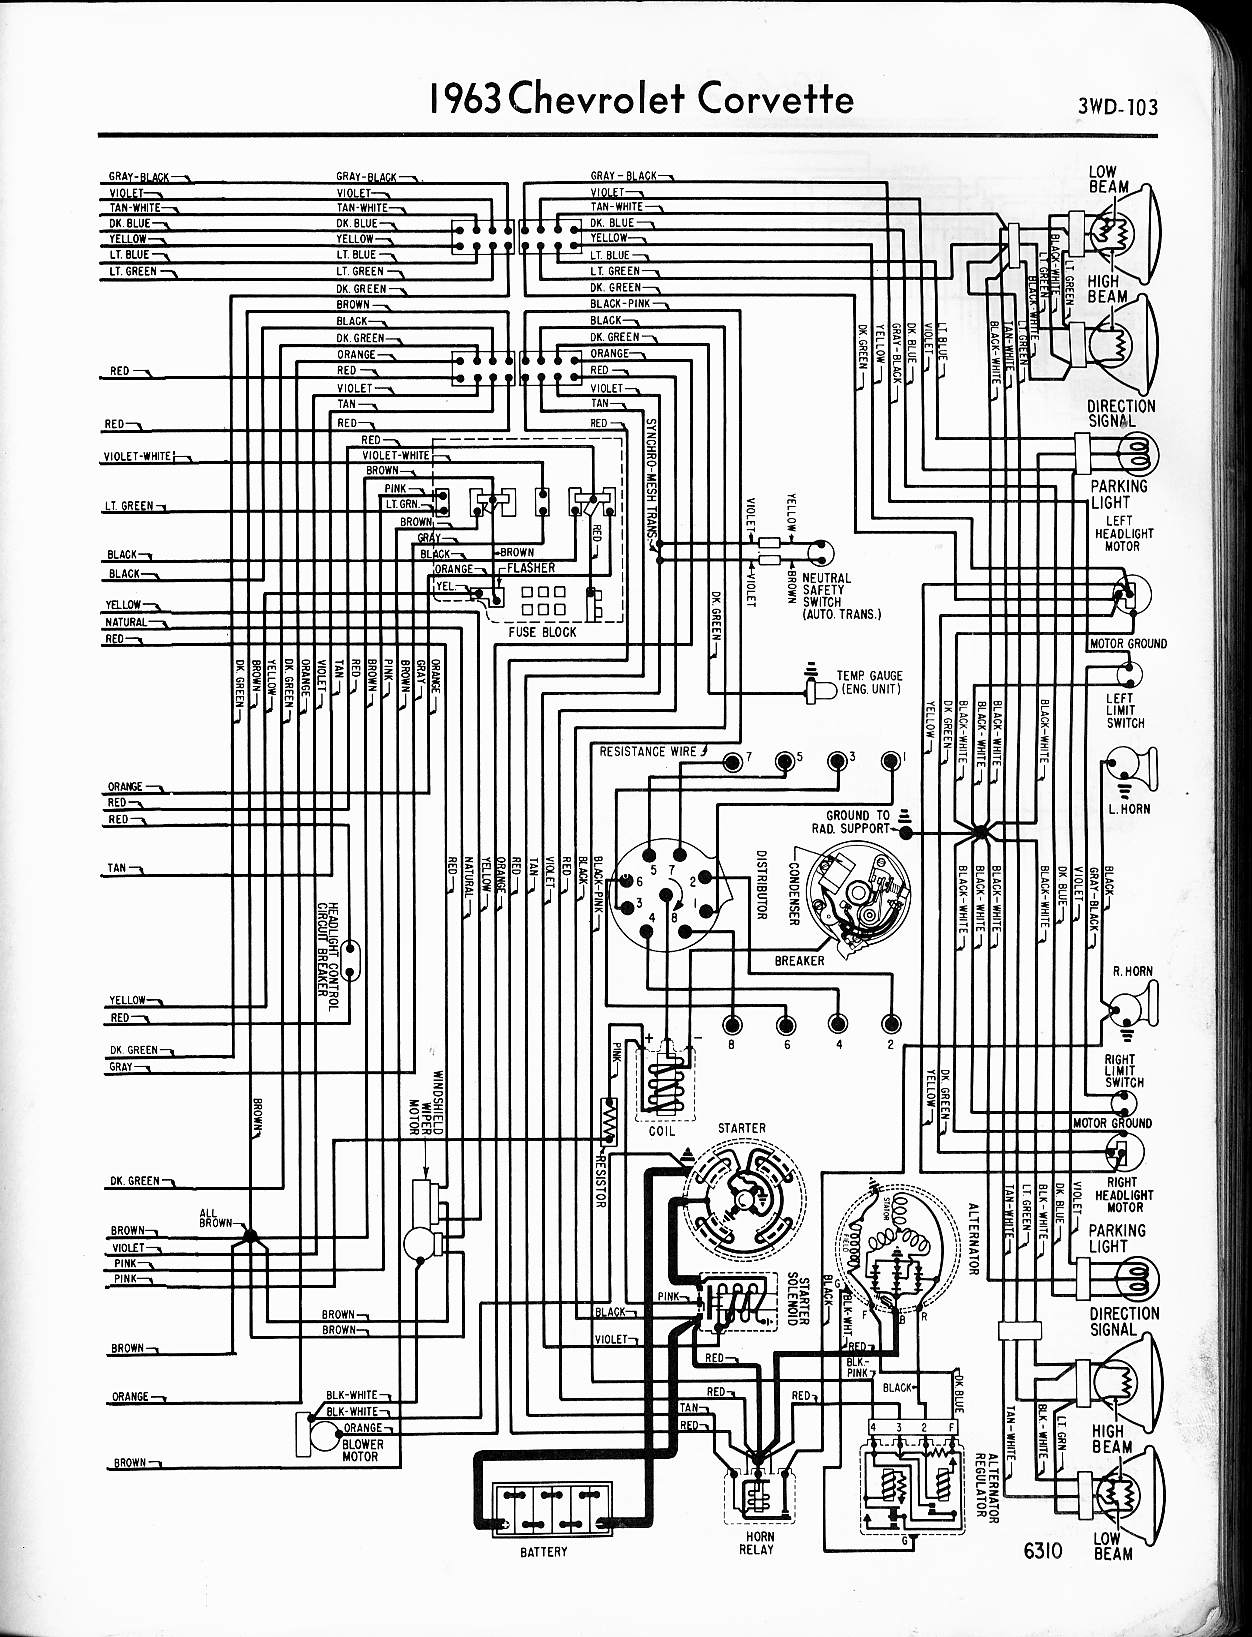 hight resolution of 1963 chevrolet wiring diagram wiring diagrams 1979 chevy alternator wiring diagram 57 65 chevy wiring diagrams